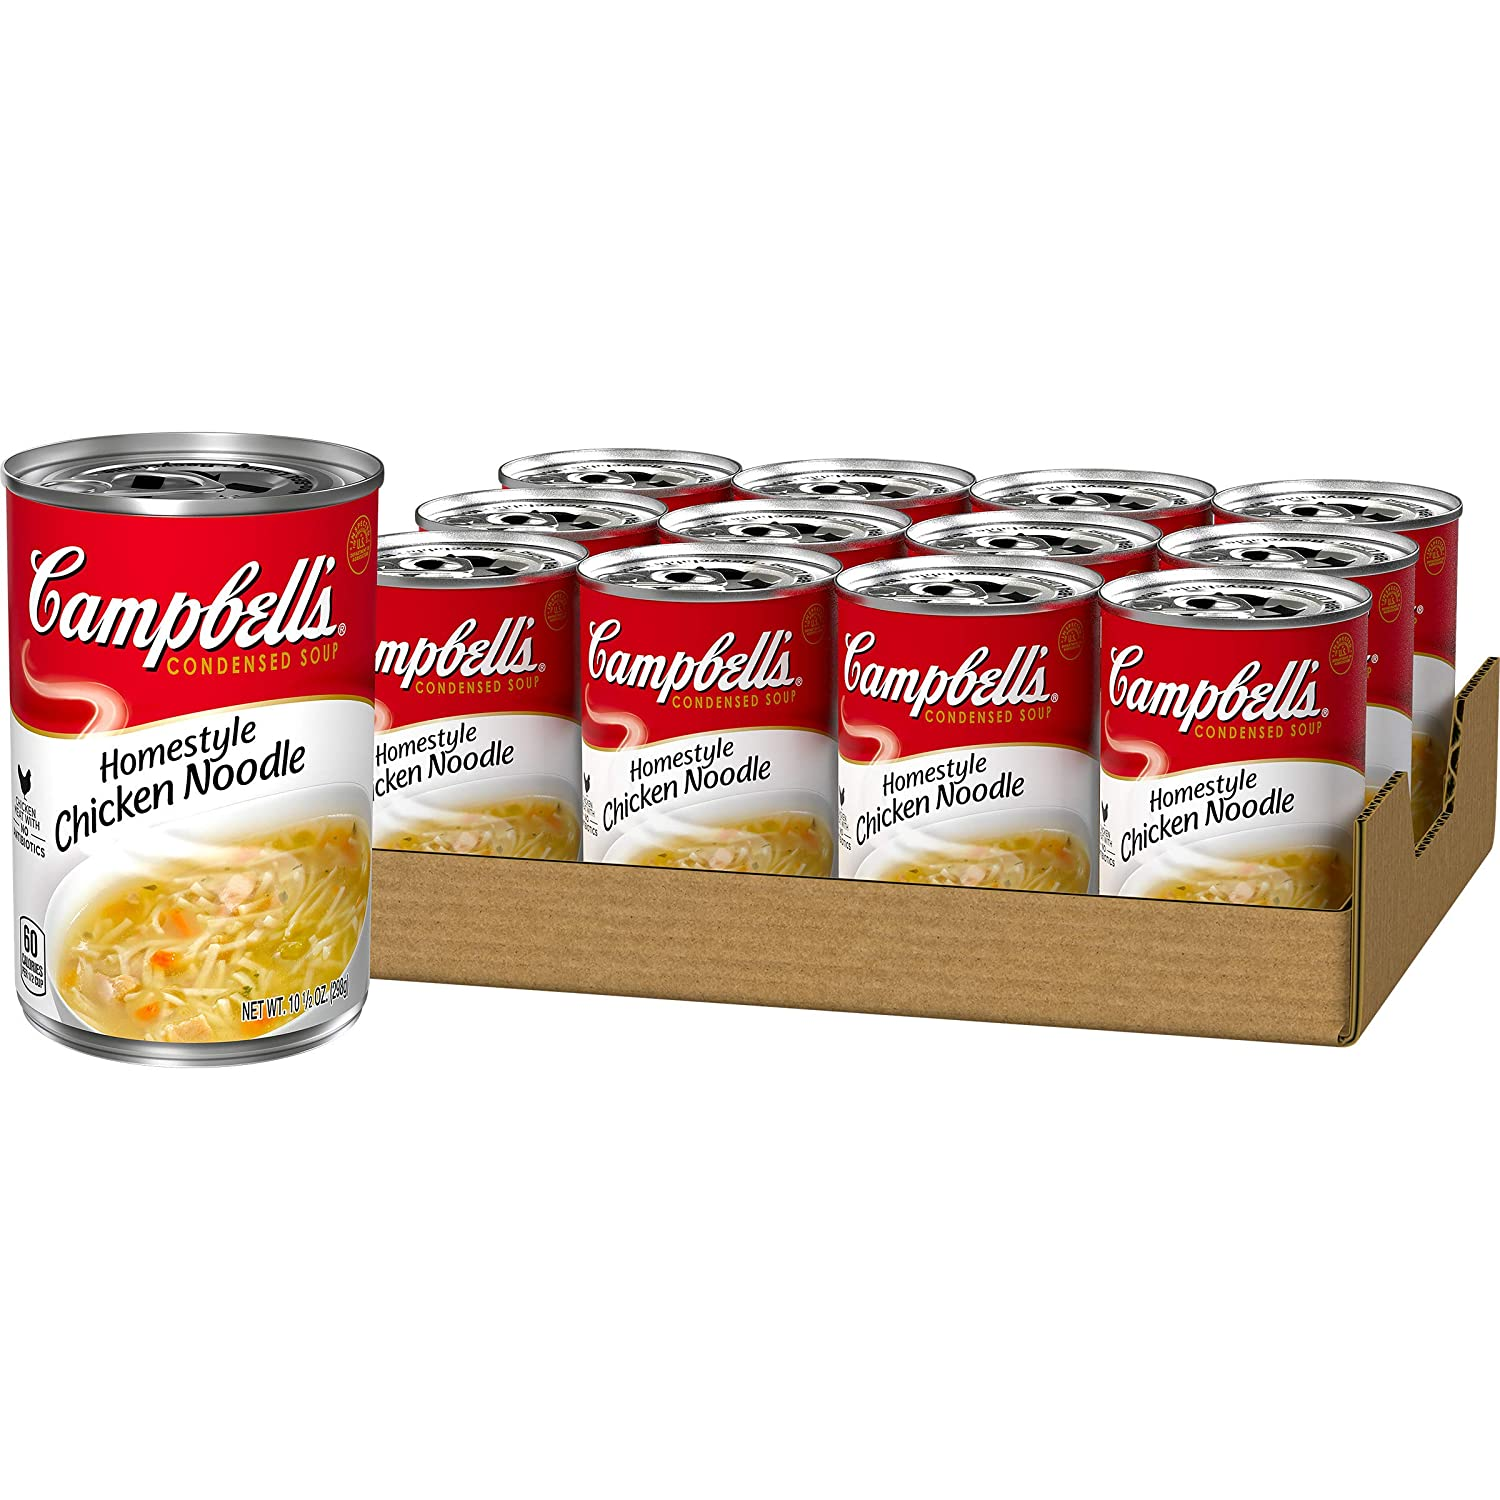 12 pack of Campbell's Condensed Homestyle Chicken Noodle Soup